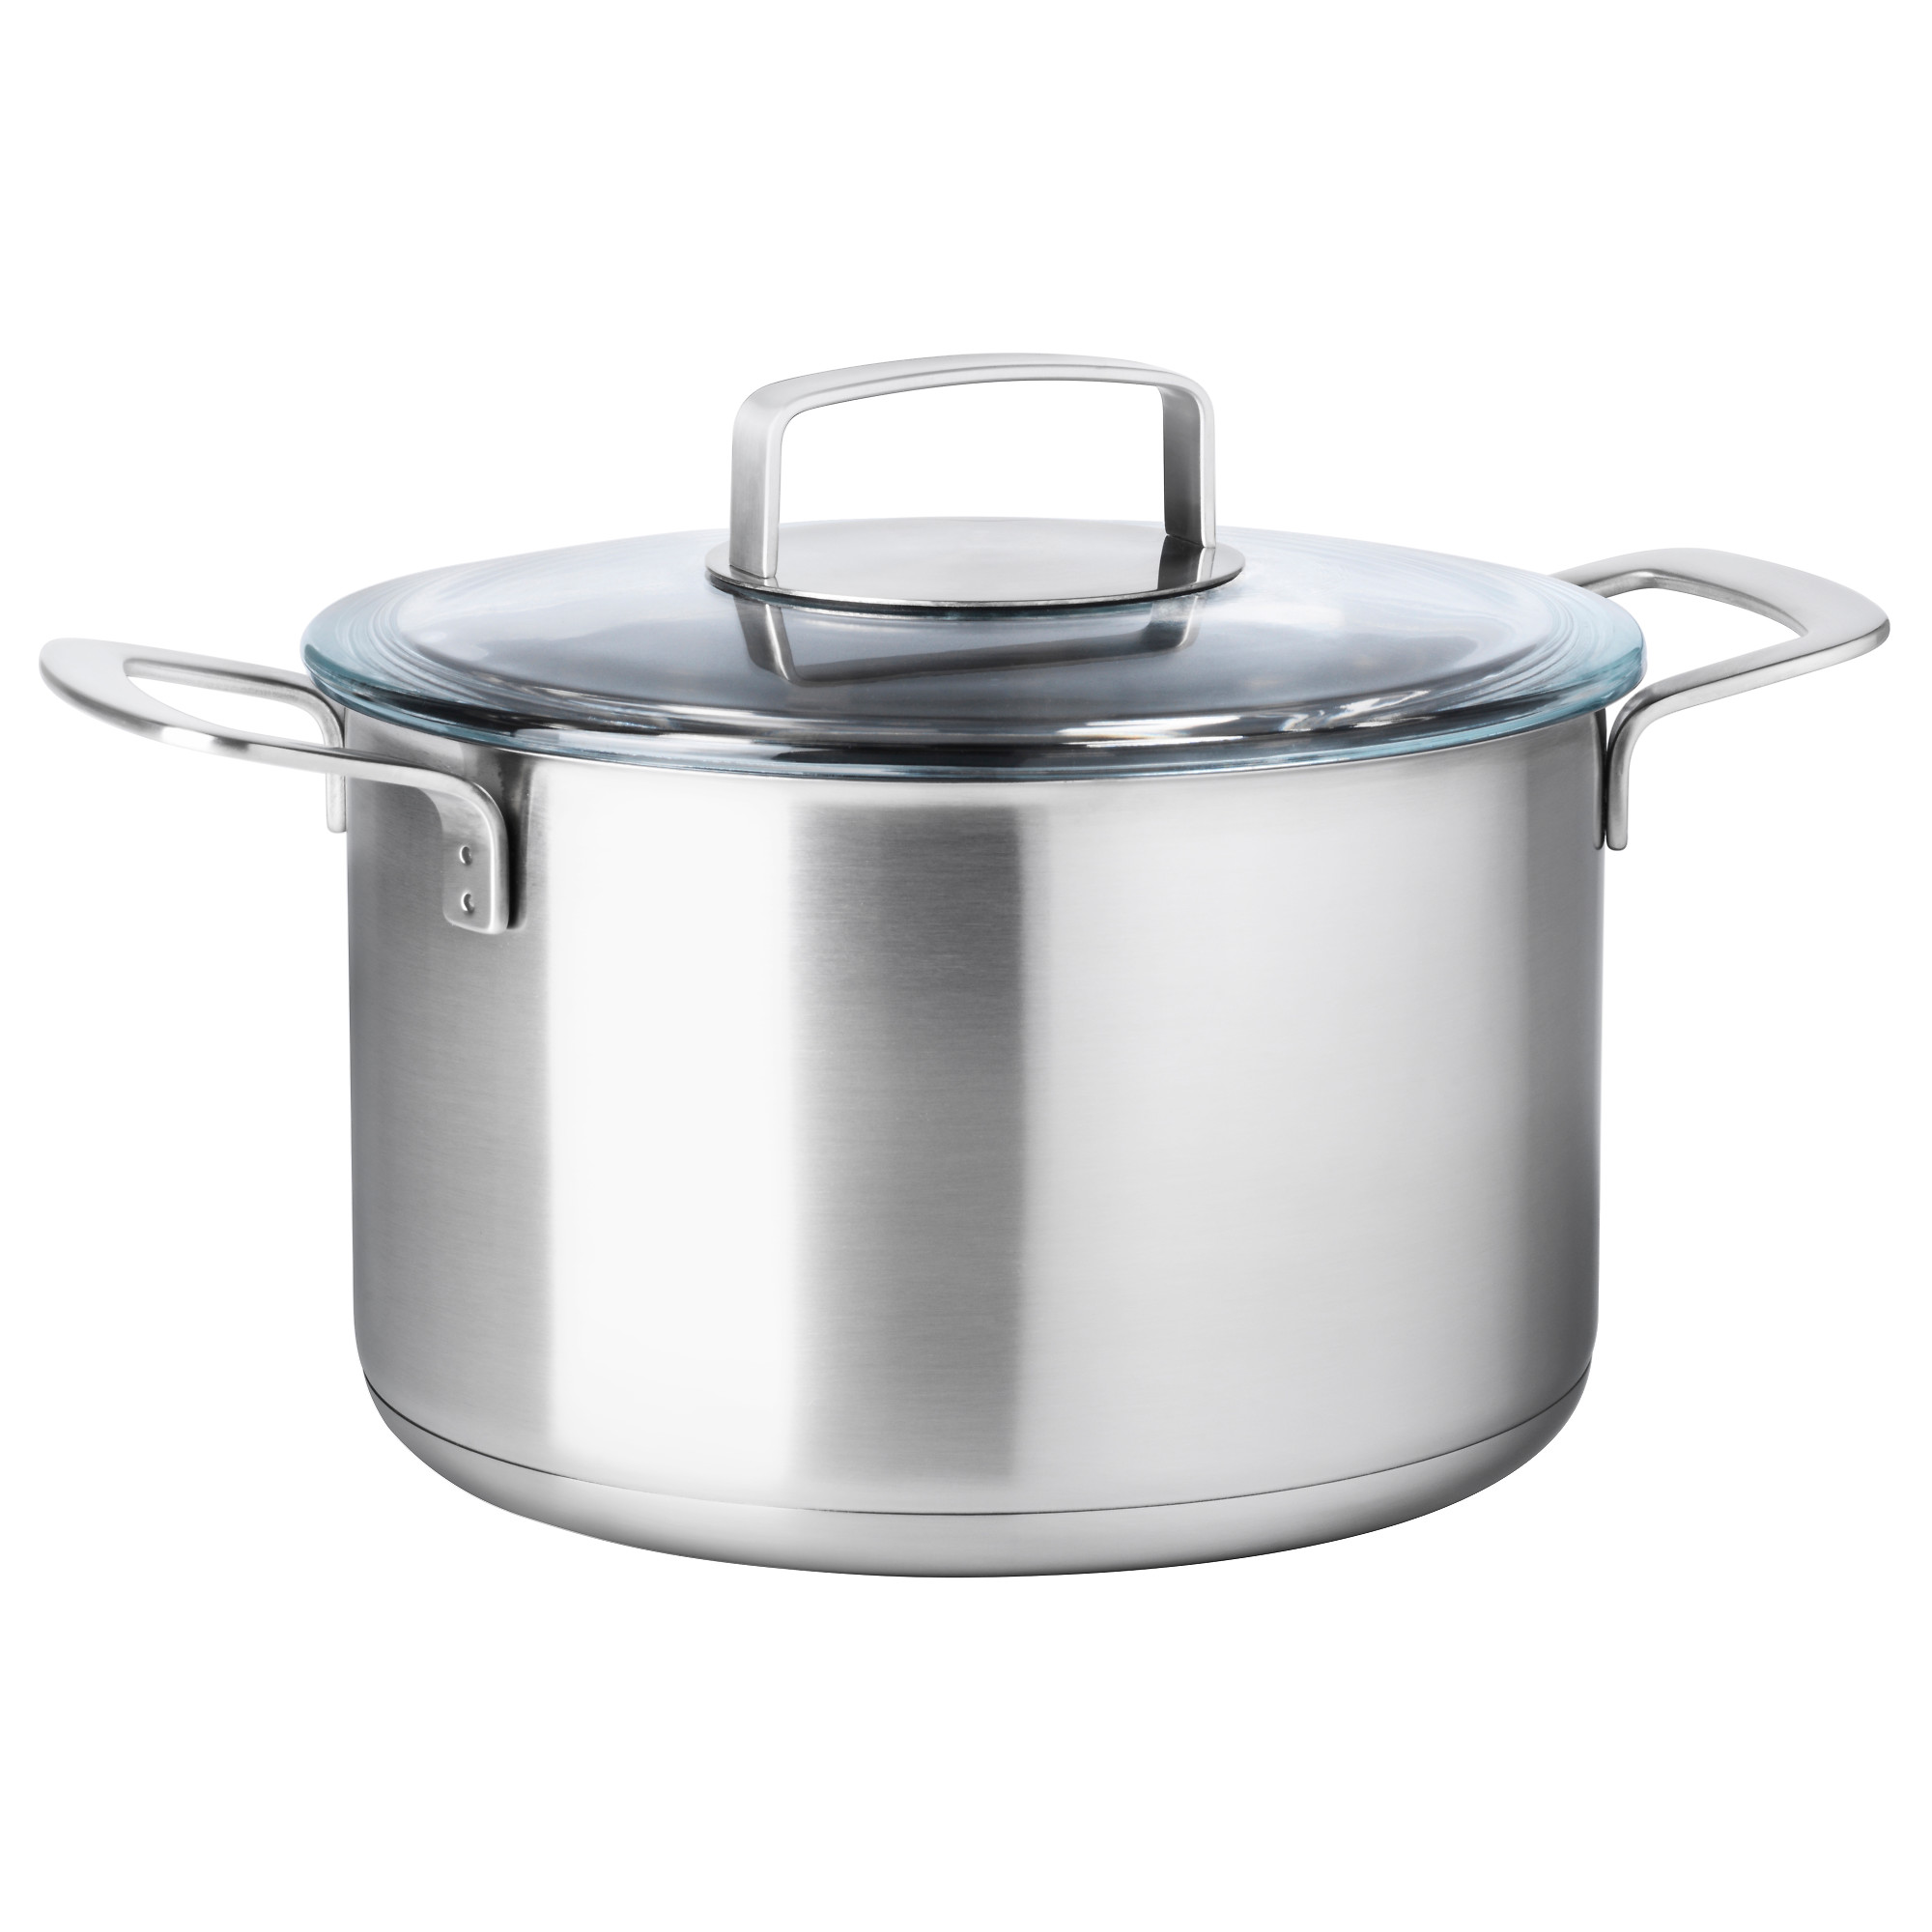 Ikea 365 Pot With Lid Stainless